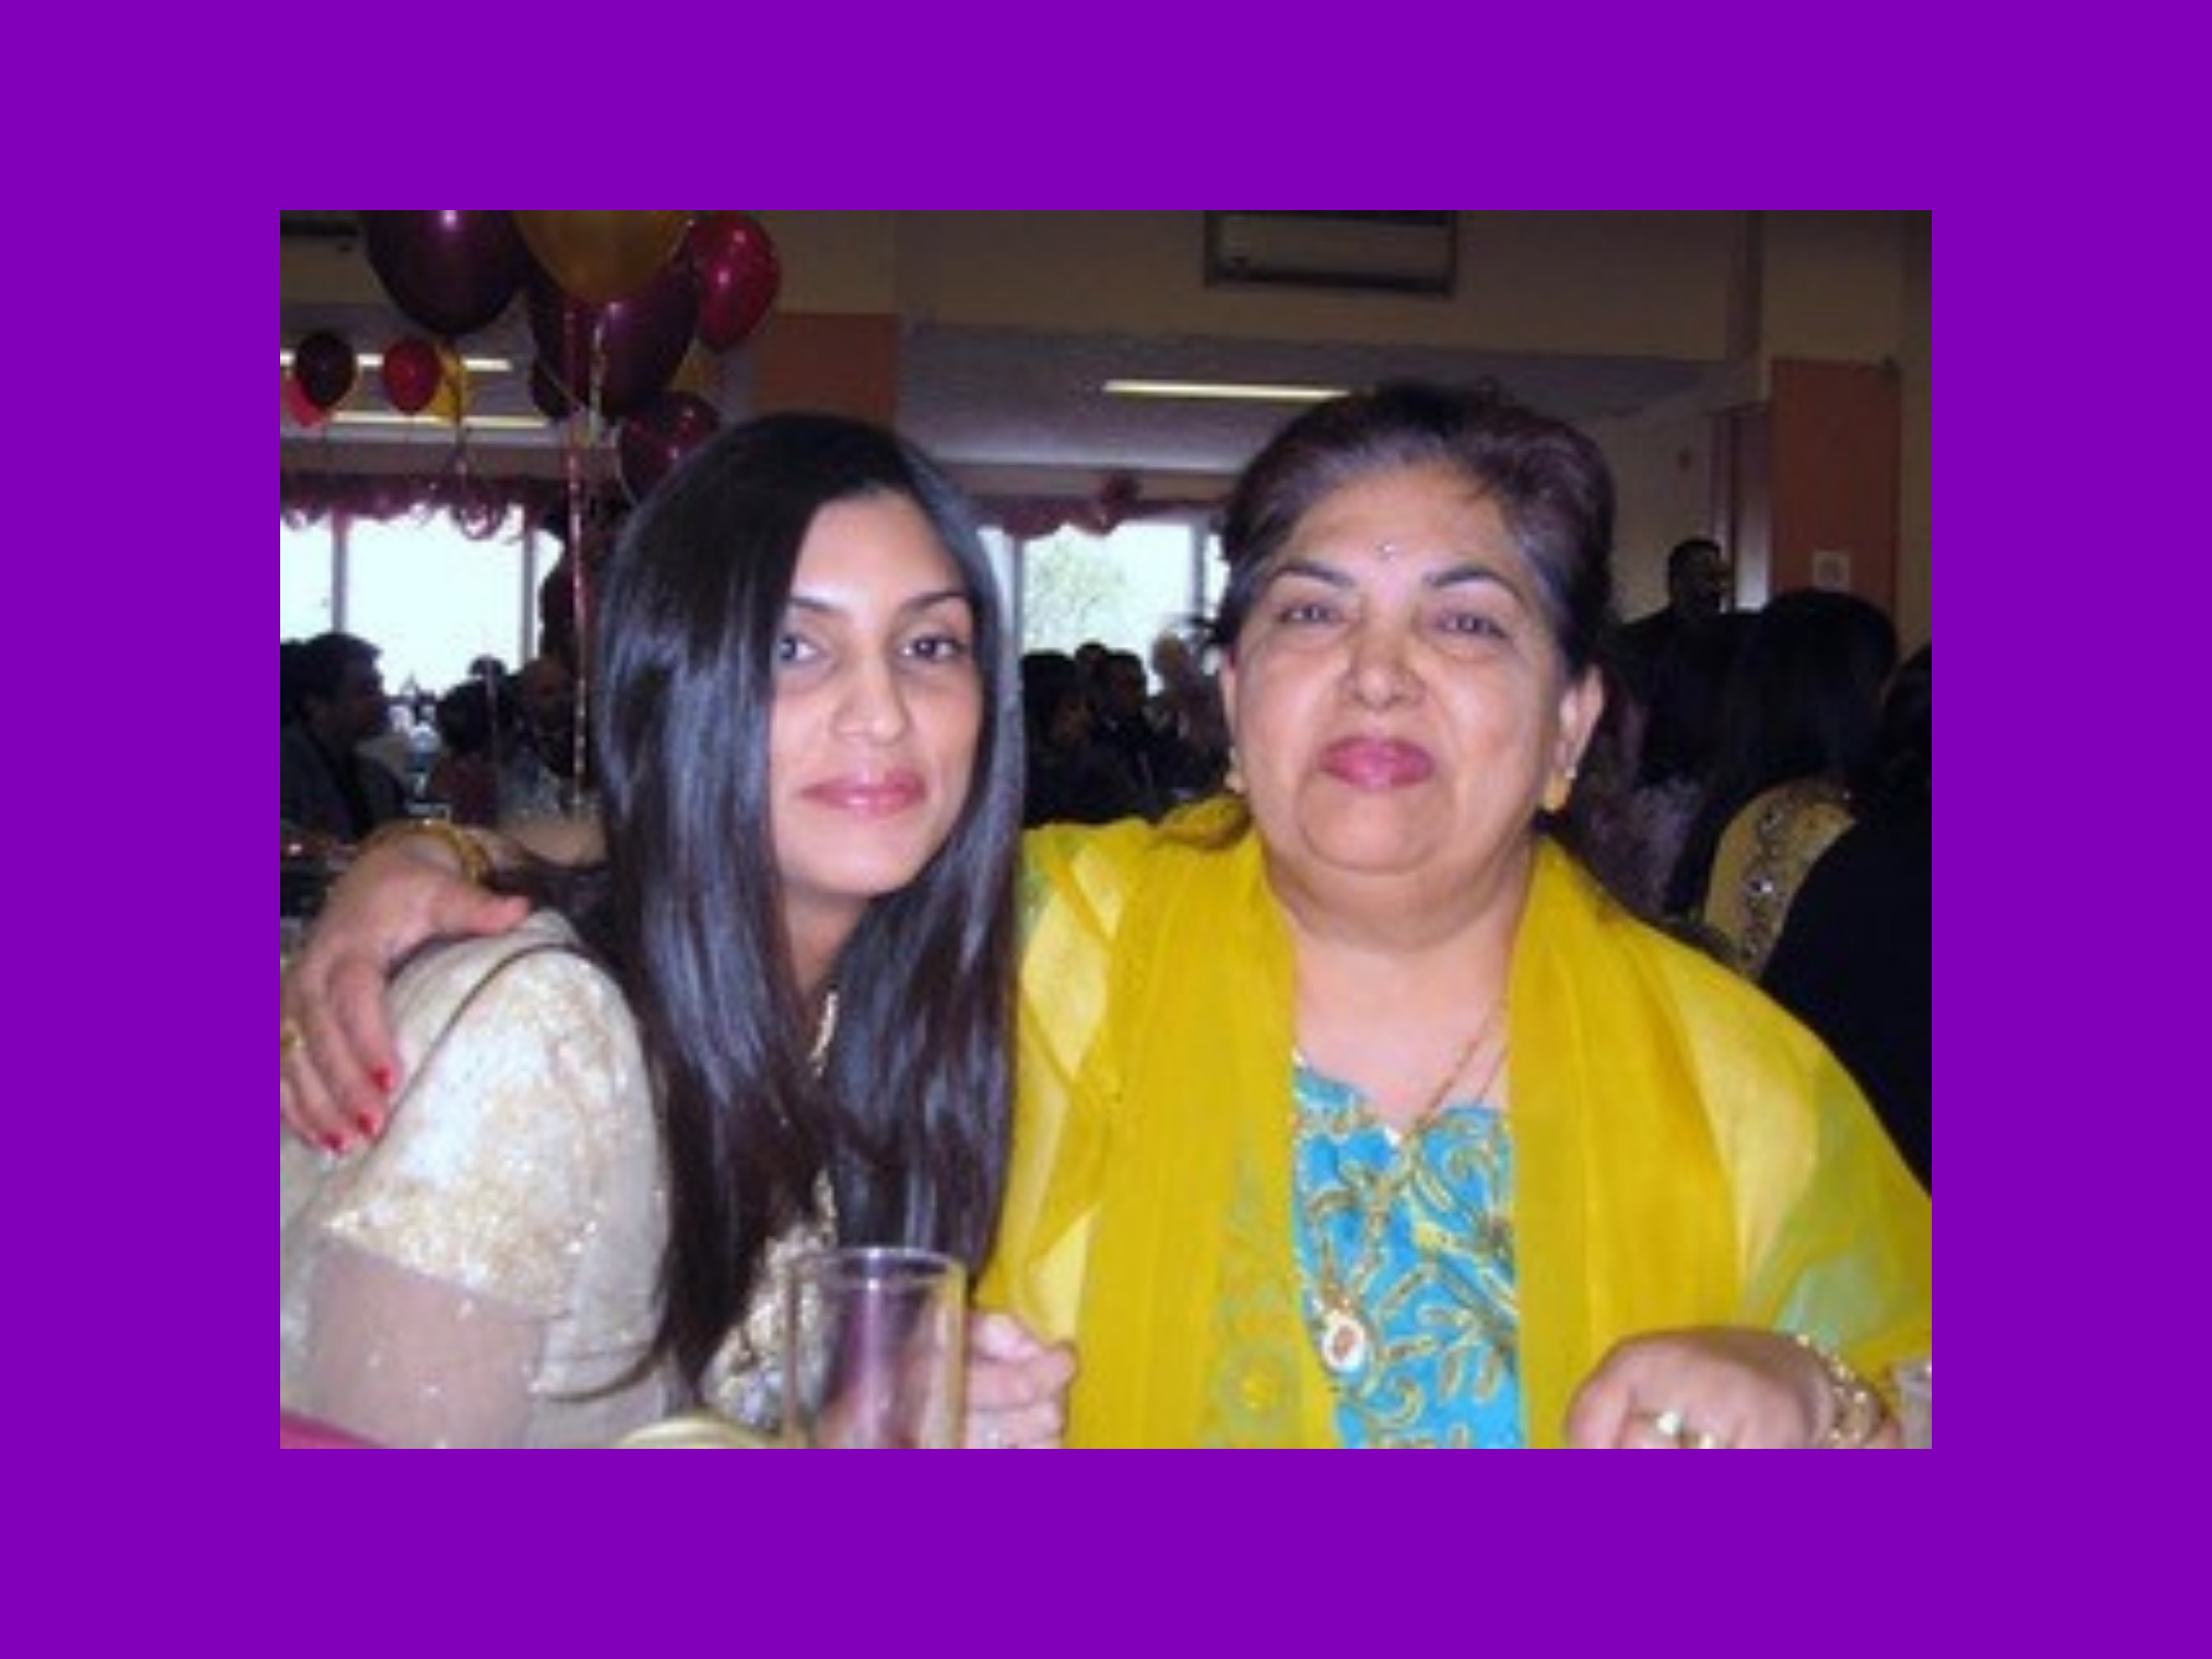 Pictures of Ruby and her Mum, Subita